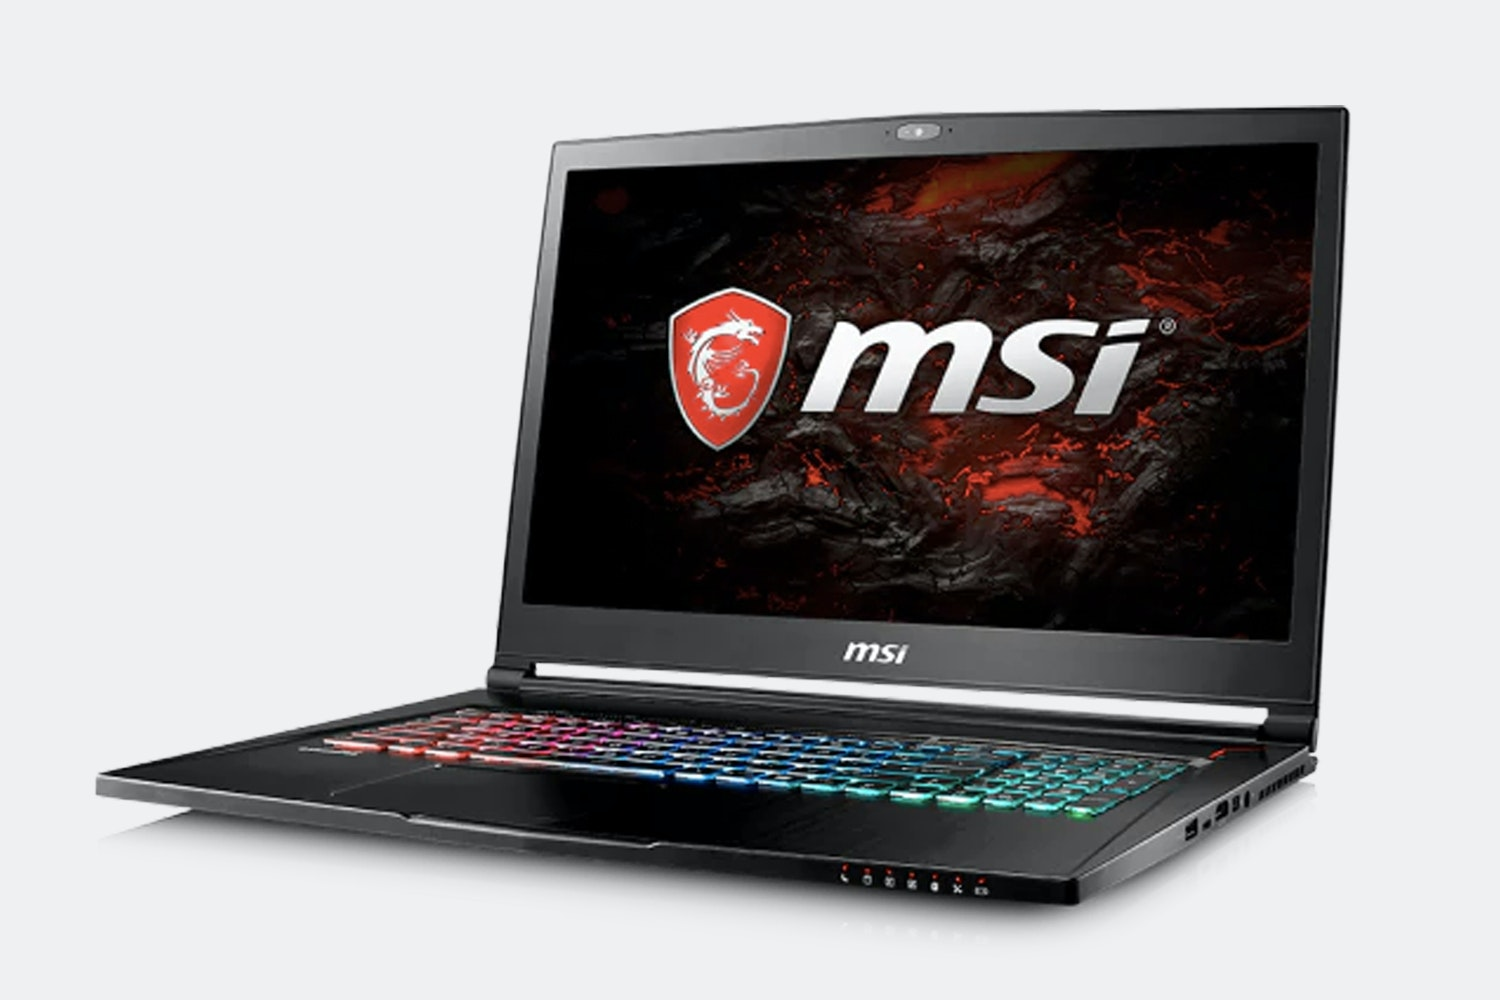 MSI Stealth Pro 17-Inch 4K GS73VR Gaming Laptop